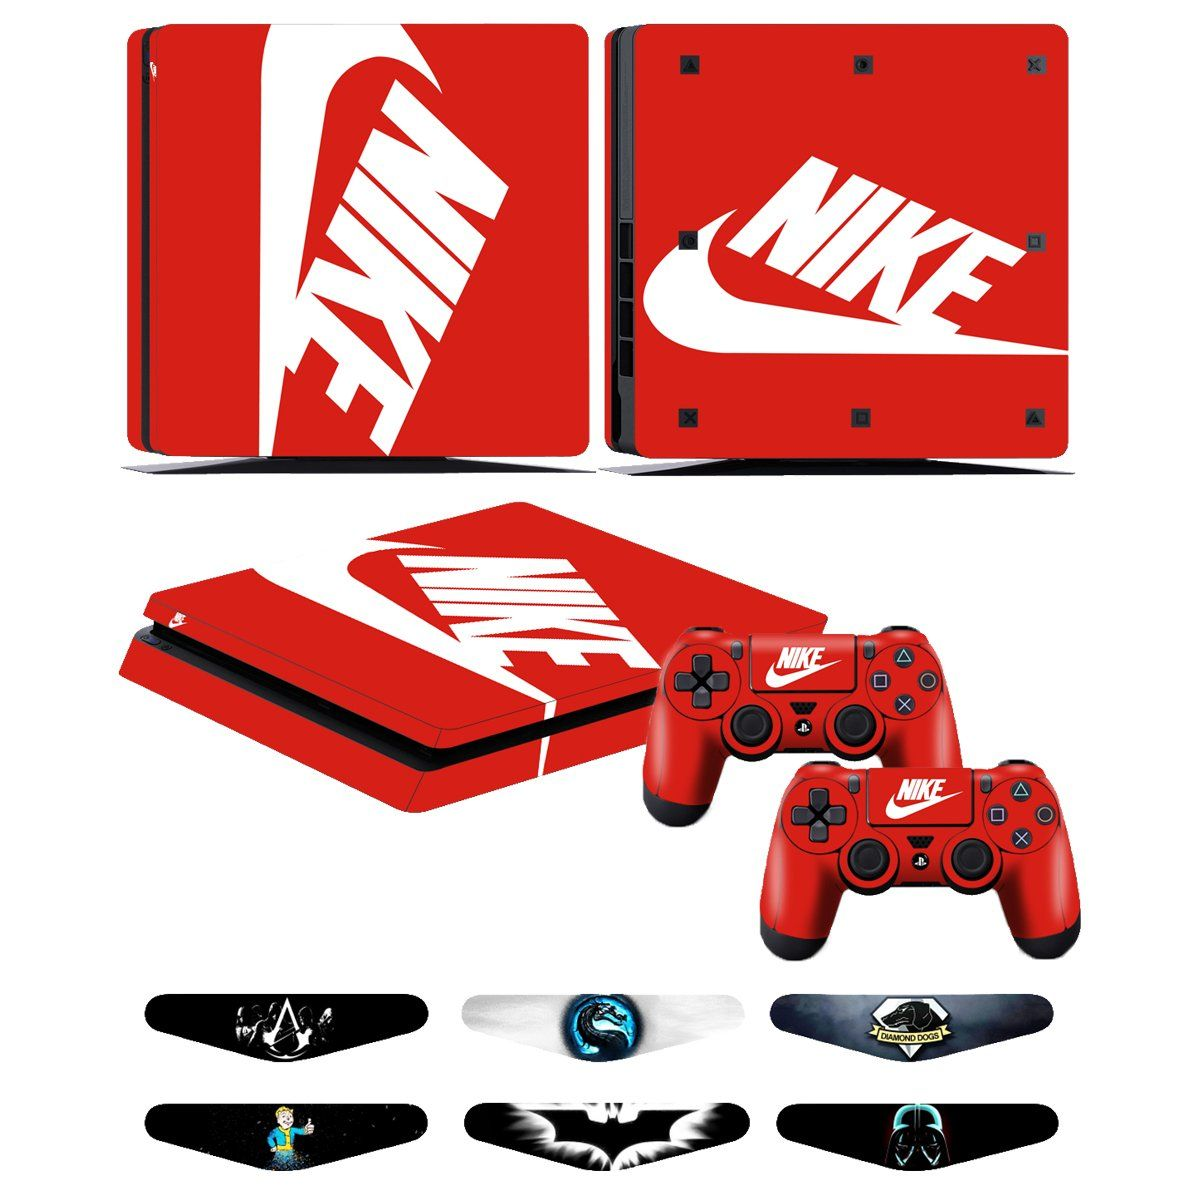 8957f2bb28fd7 PS4 Slim Skins - Decals for PS4 Controller Playstation 4 Slim ...